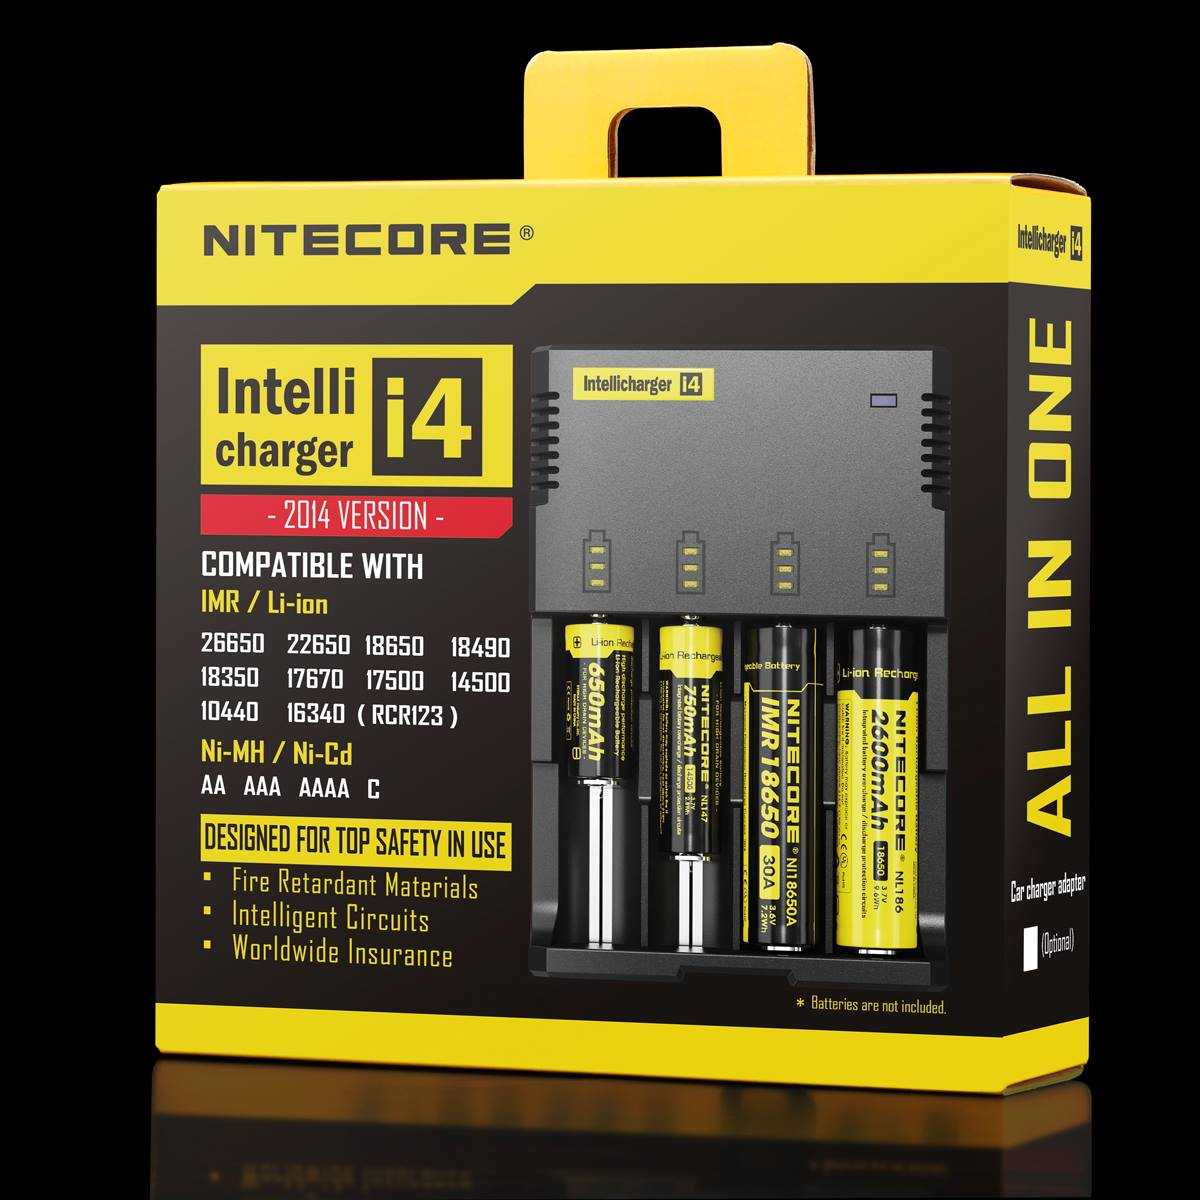 Nitecore I4 restock with good price, welcome to check.